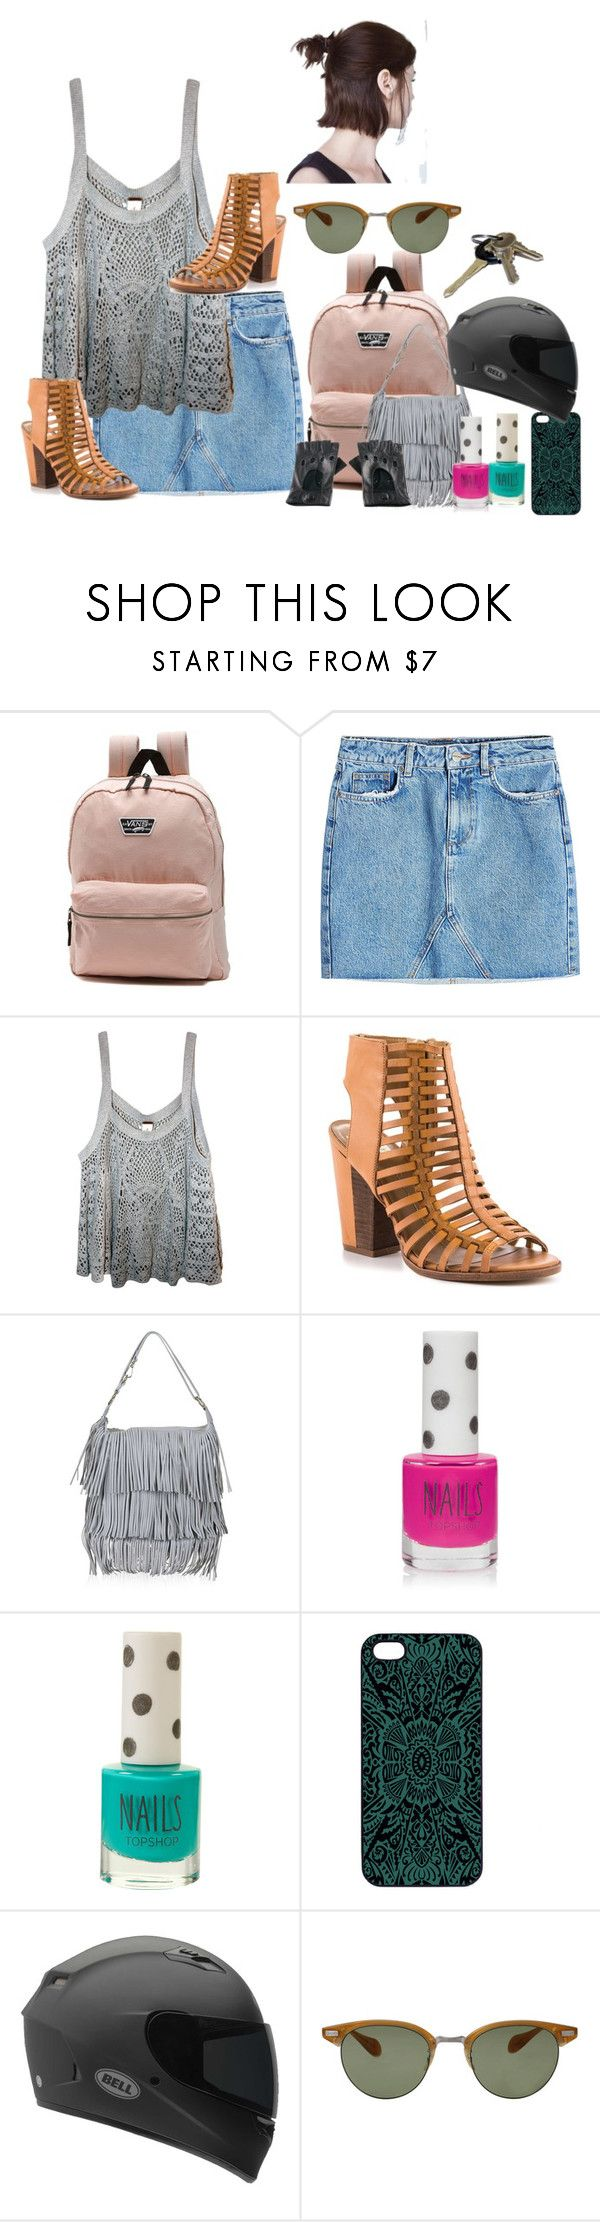 """""""Sammi McCall 3.1x1"""" by samtiritilli666lol ❤ liked on Polyvore featuring Vans, Anine Bing, Free People, Dolce Vita, Topshop, Samantha Warren London, Oliver Peoples and Black"""